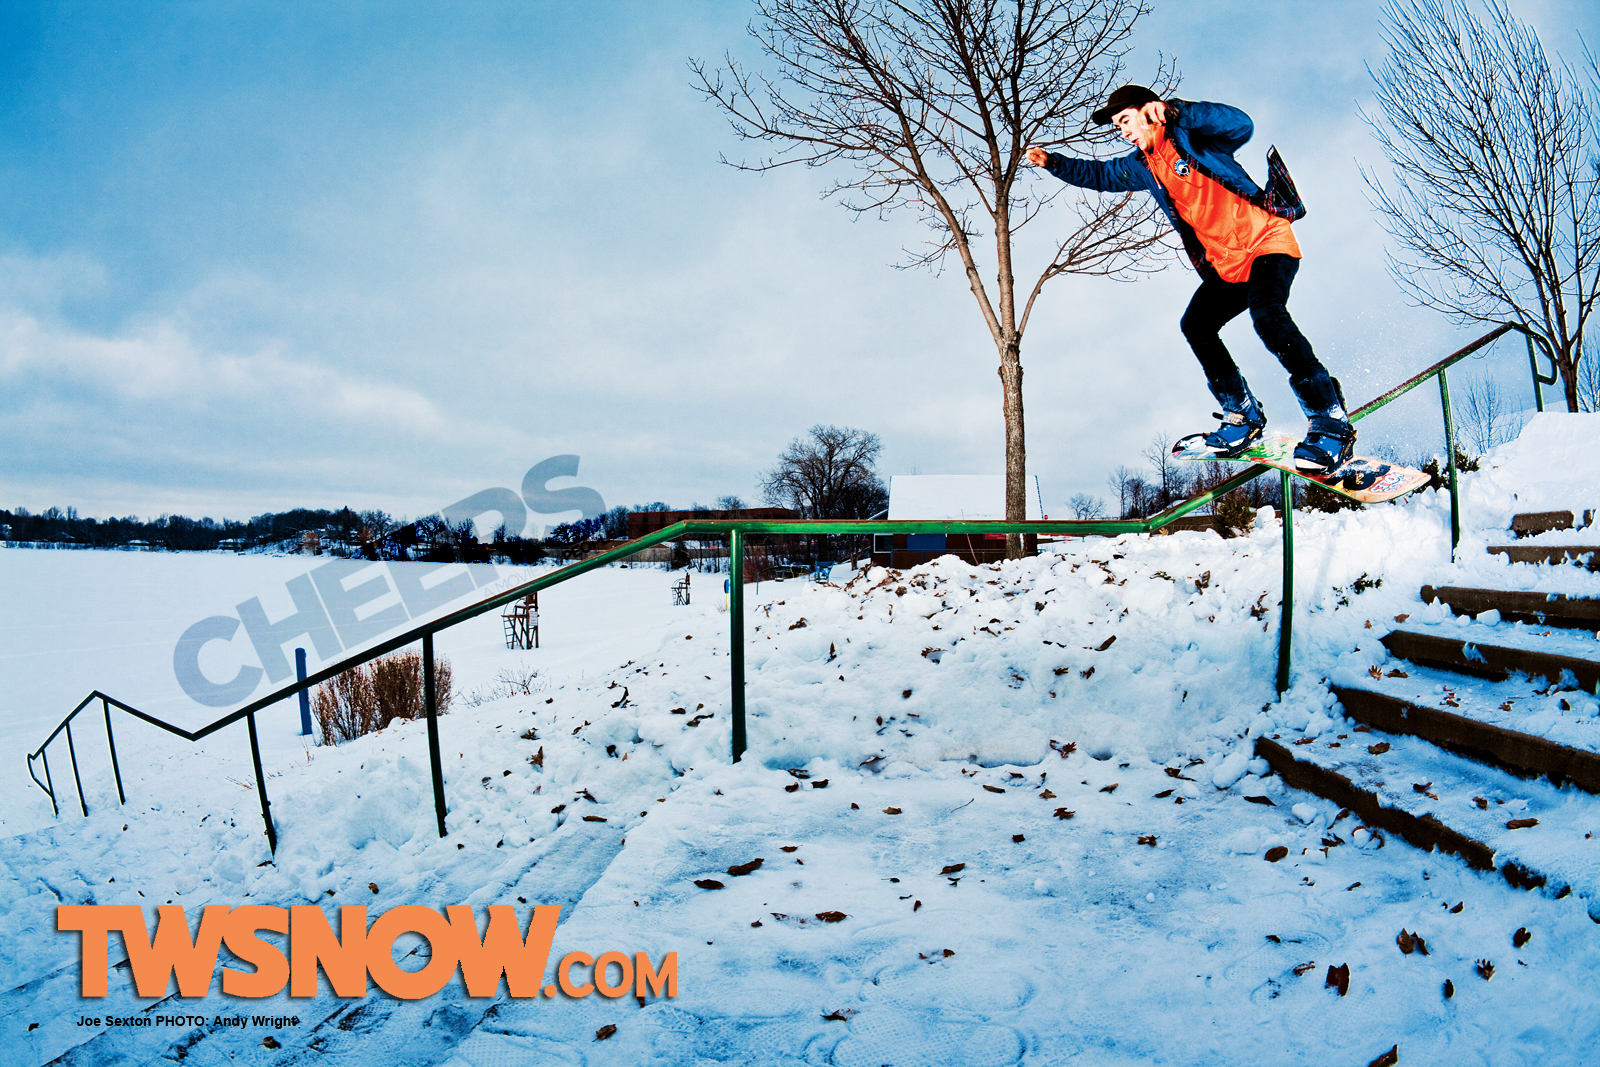 Transworld SNOWboarding Wednesday Wallpaper CHEERS Week 1600x1067